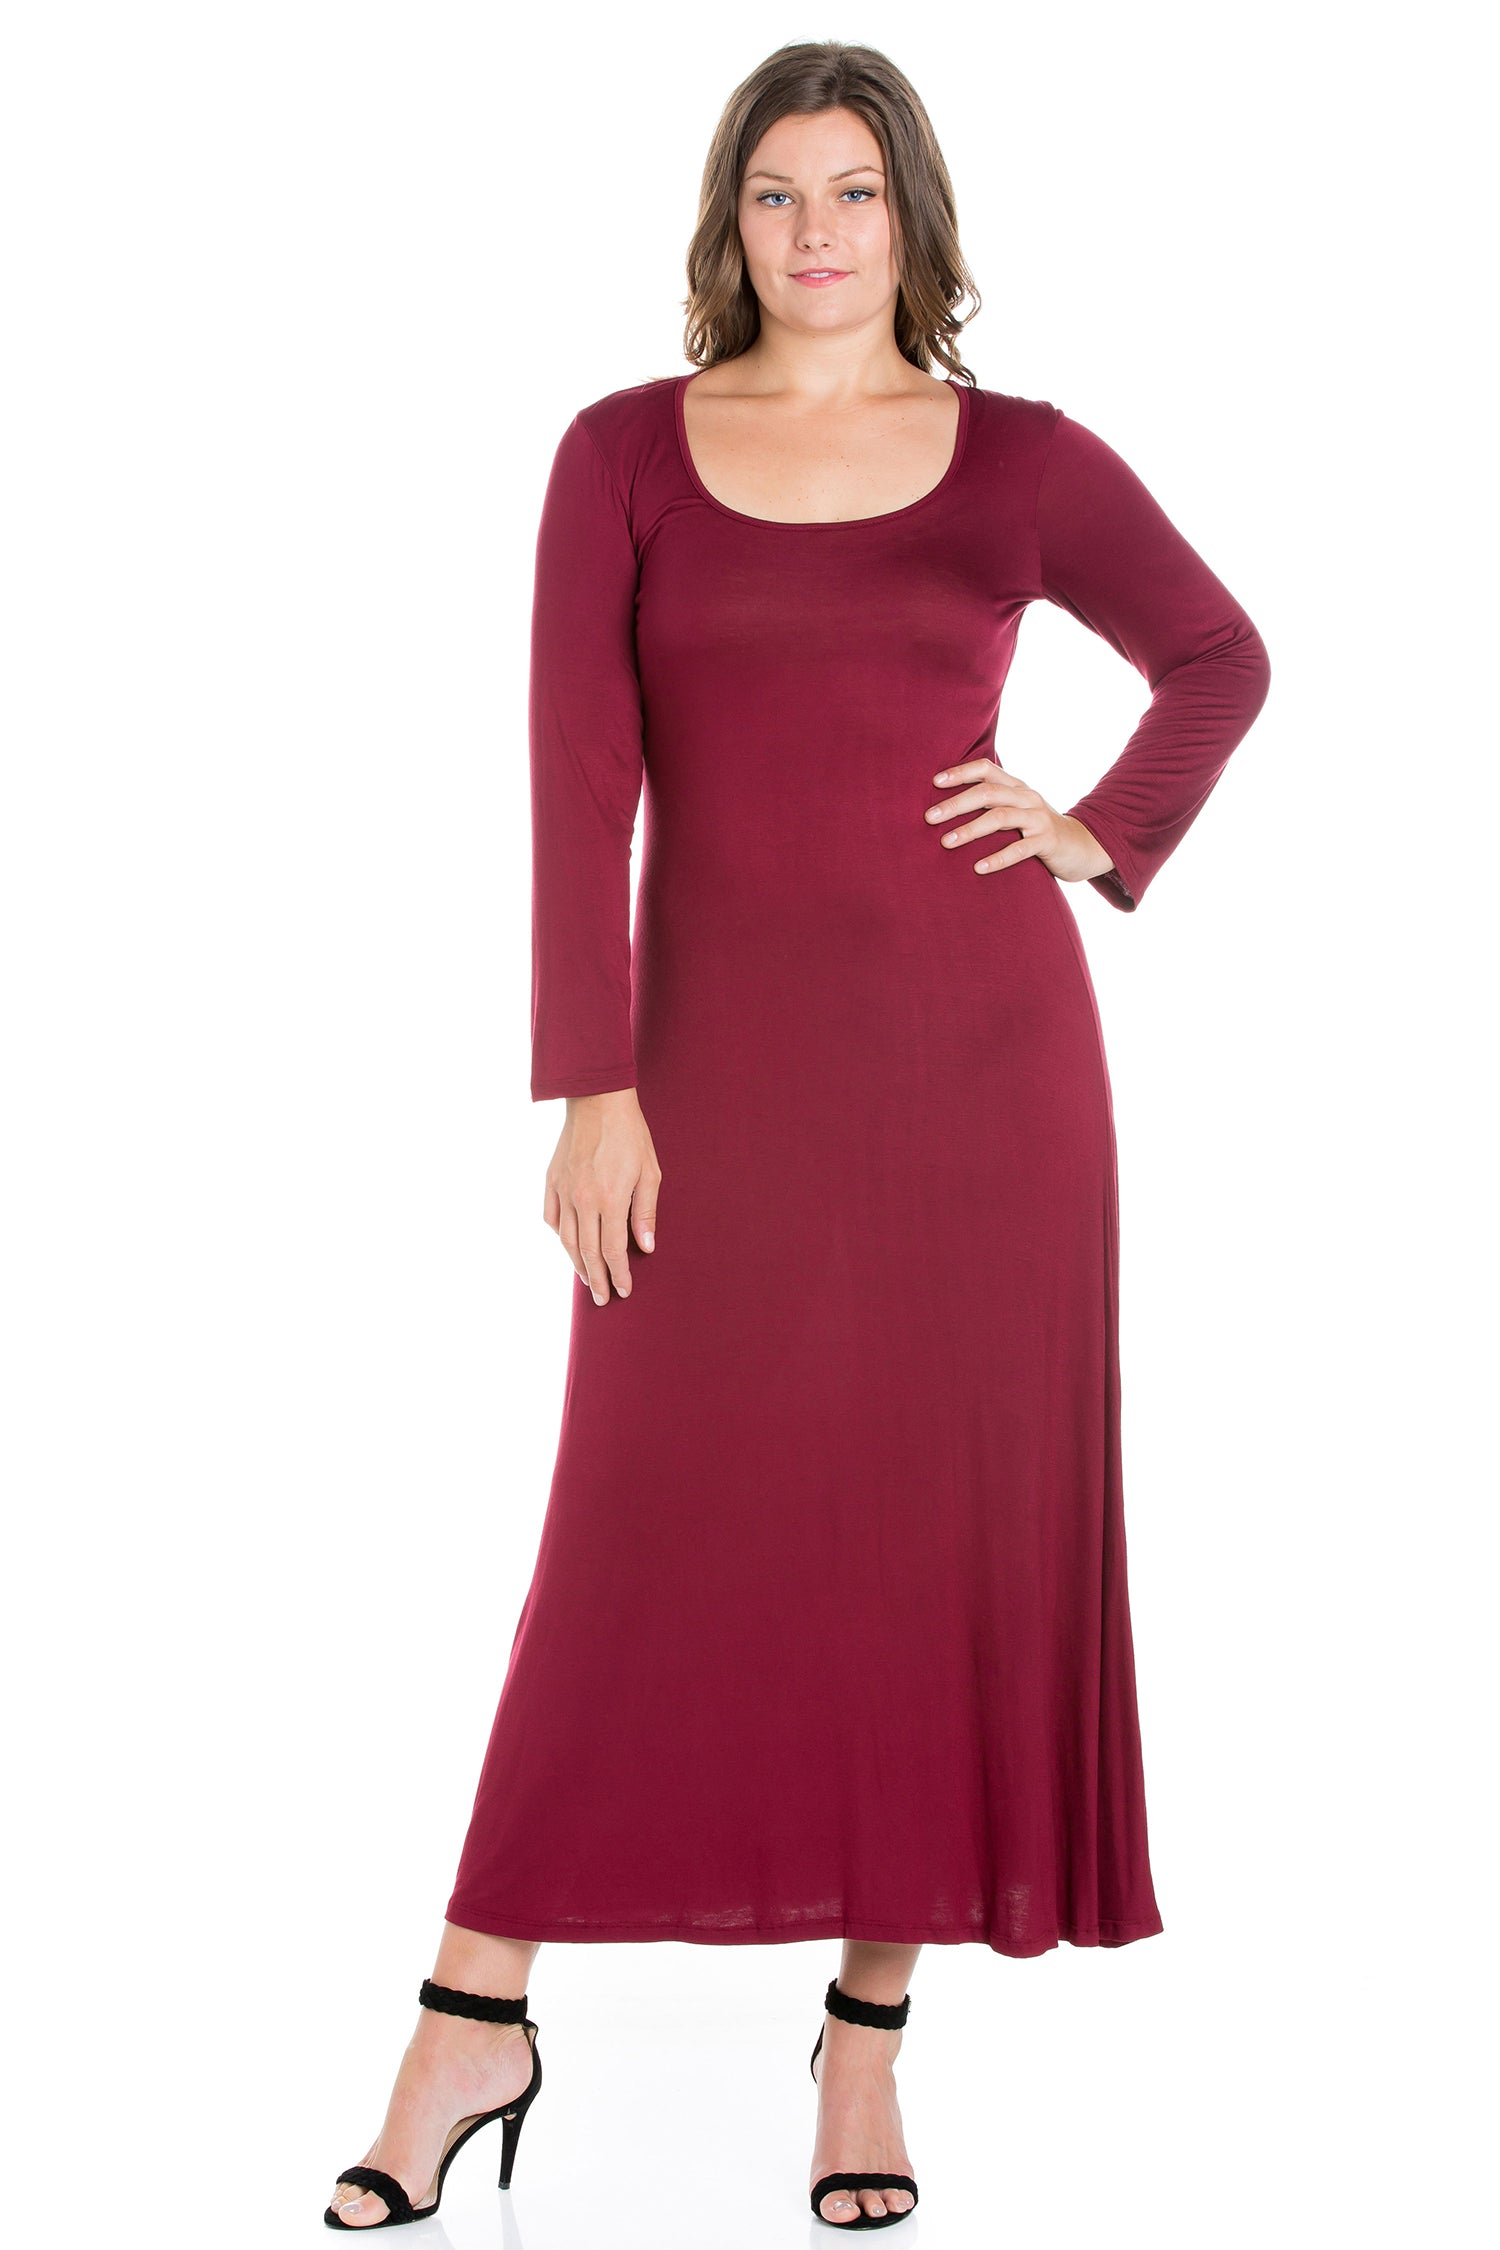 24seven Comfort Apparel Womens Long Sleeve Plus Size Maxi Dress-DRESSES-24Seven Comfort Apparel-WINE-1X-24/7 Comfort Apparel